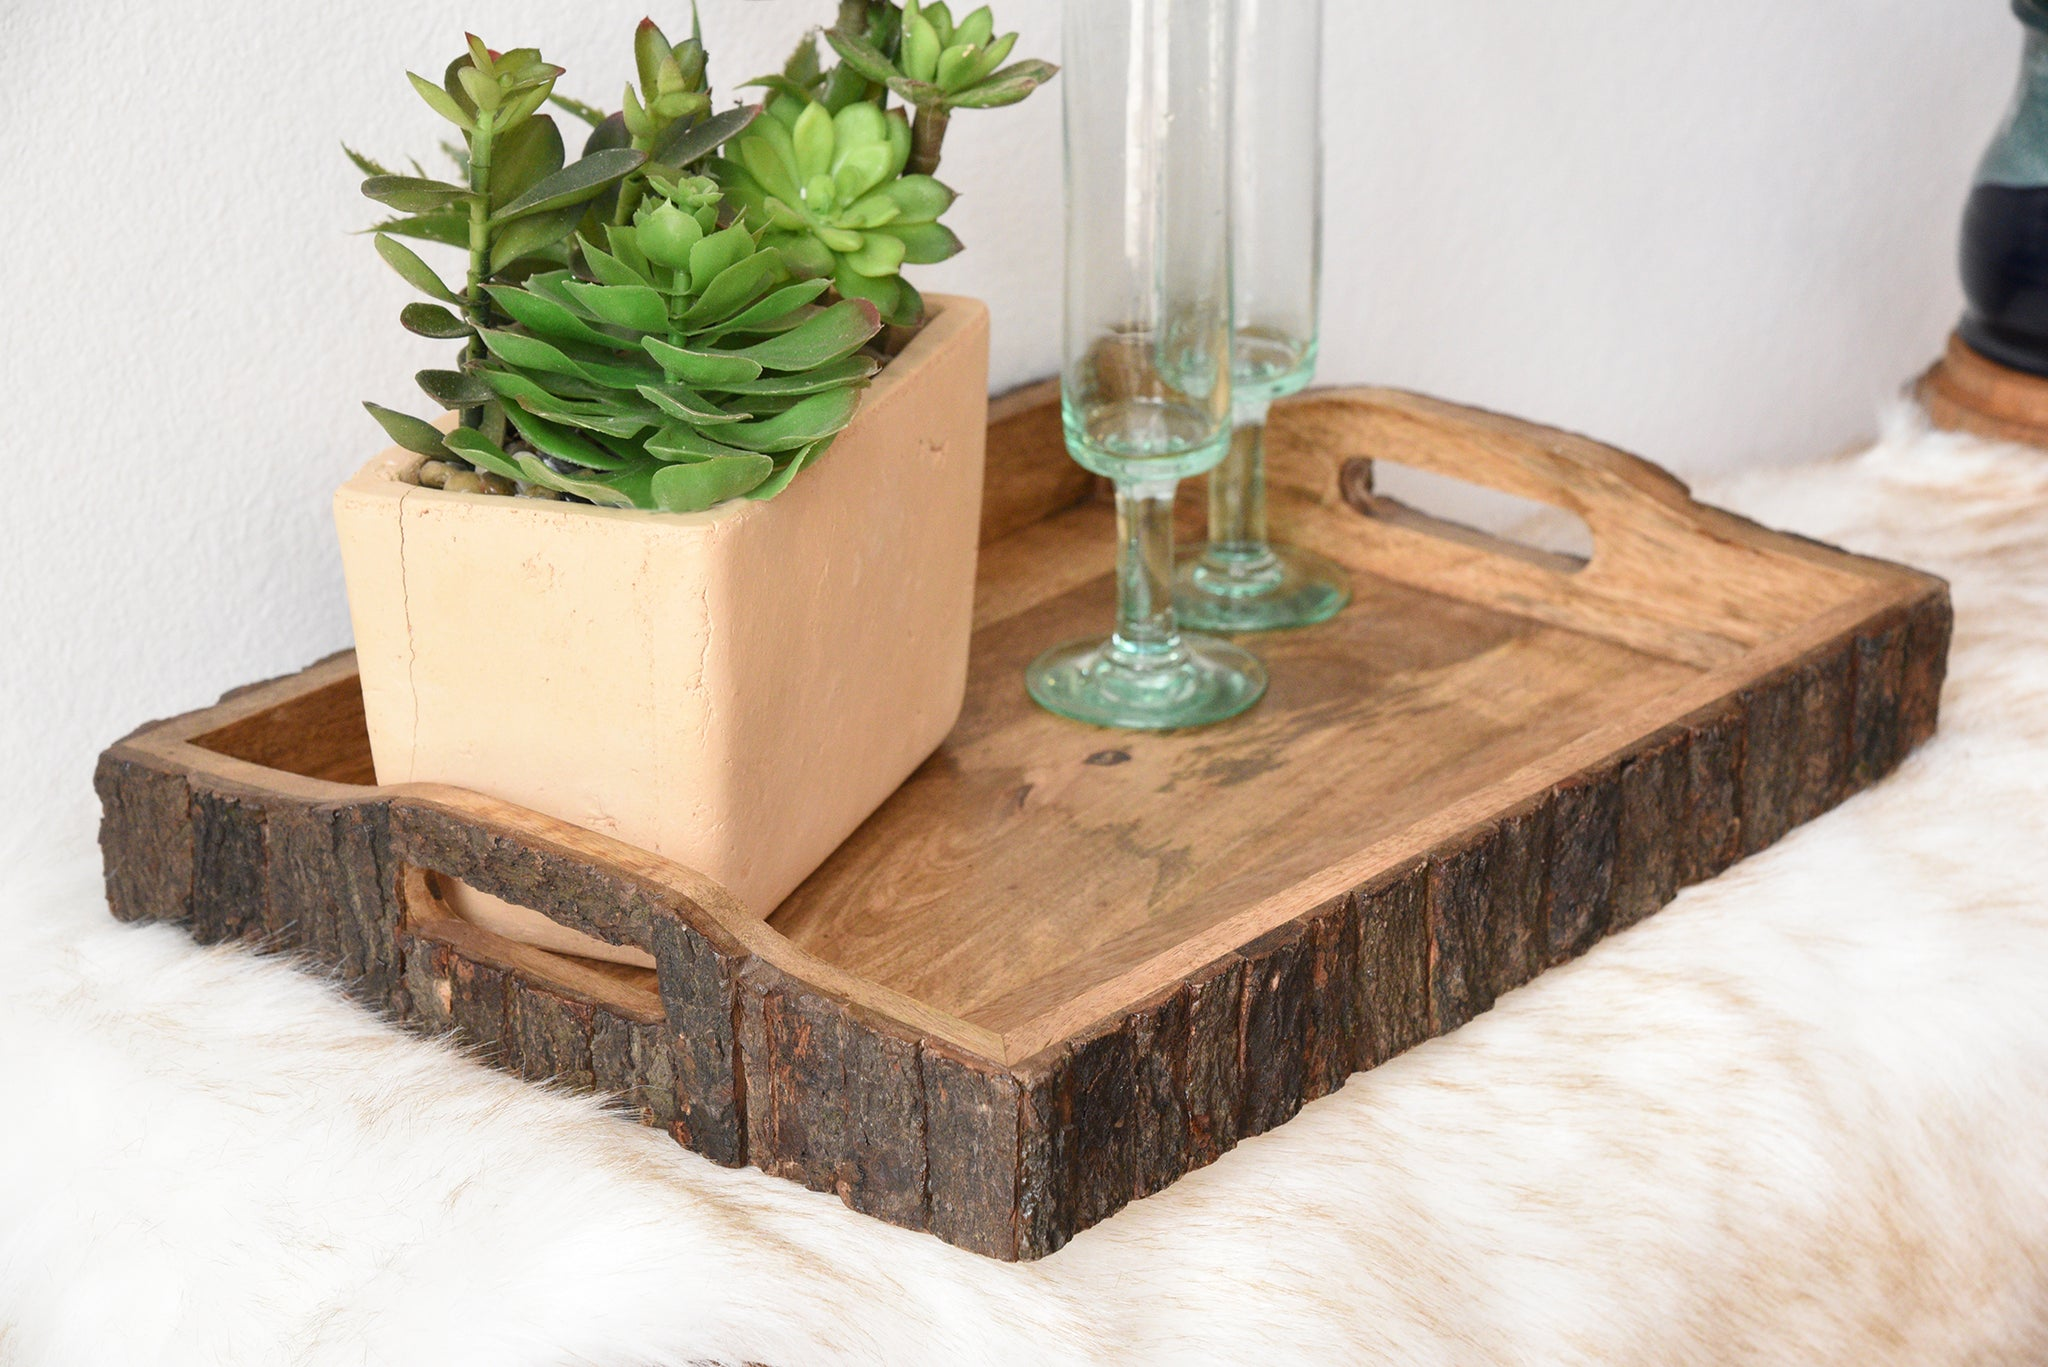 Rustic Wood Bark Serving Trays - Set of 3